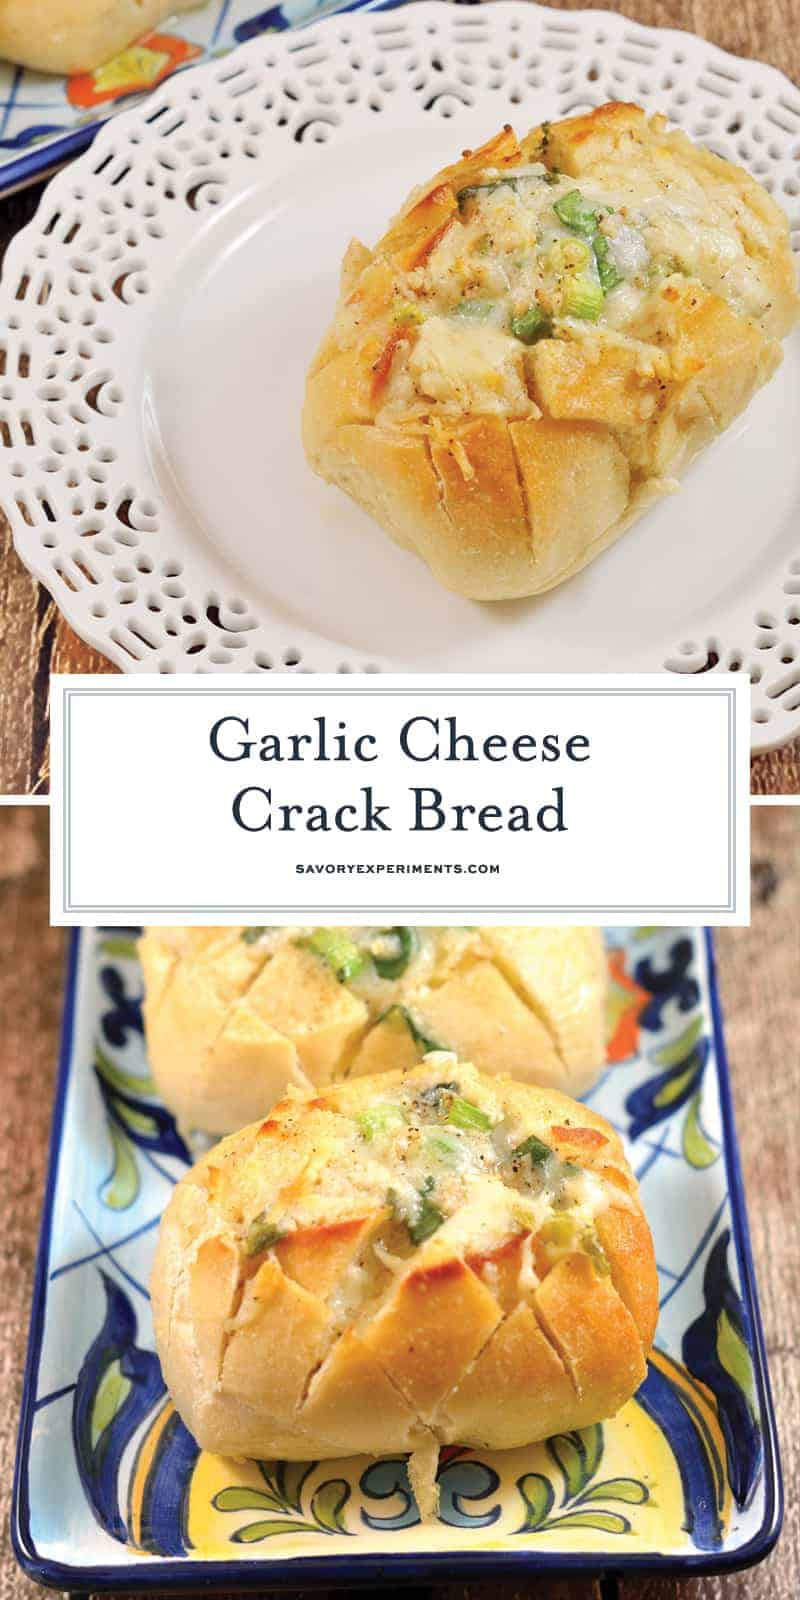 Individual Garlic Cheese Crack Bread is bread cut in a crisscross pattern, stuffed with cheese, drenched in  garlic butter and baked to golden perfection. #garlicbread #crackbread www.savoryexperiments.com